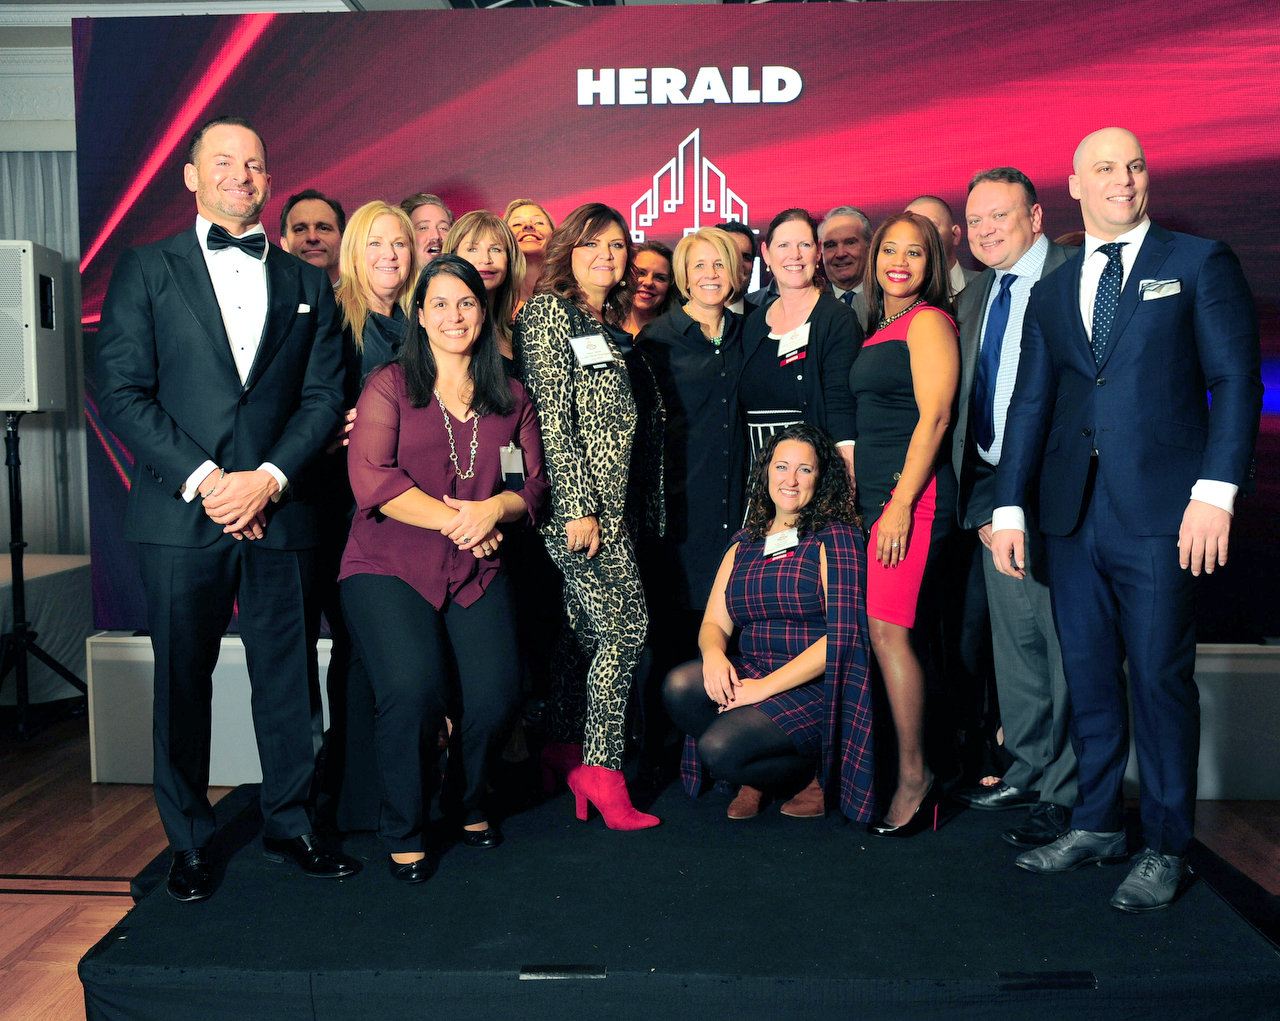 The Real Estate Achievement and Leadership Awards Gala, hosted by RichnerLIVE and Herald Community Newspapers, recognized nearly 50 of the highest-performing real estate professionals at the Carltun in Eisenhower Park on Nov. 19.